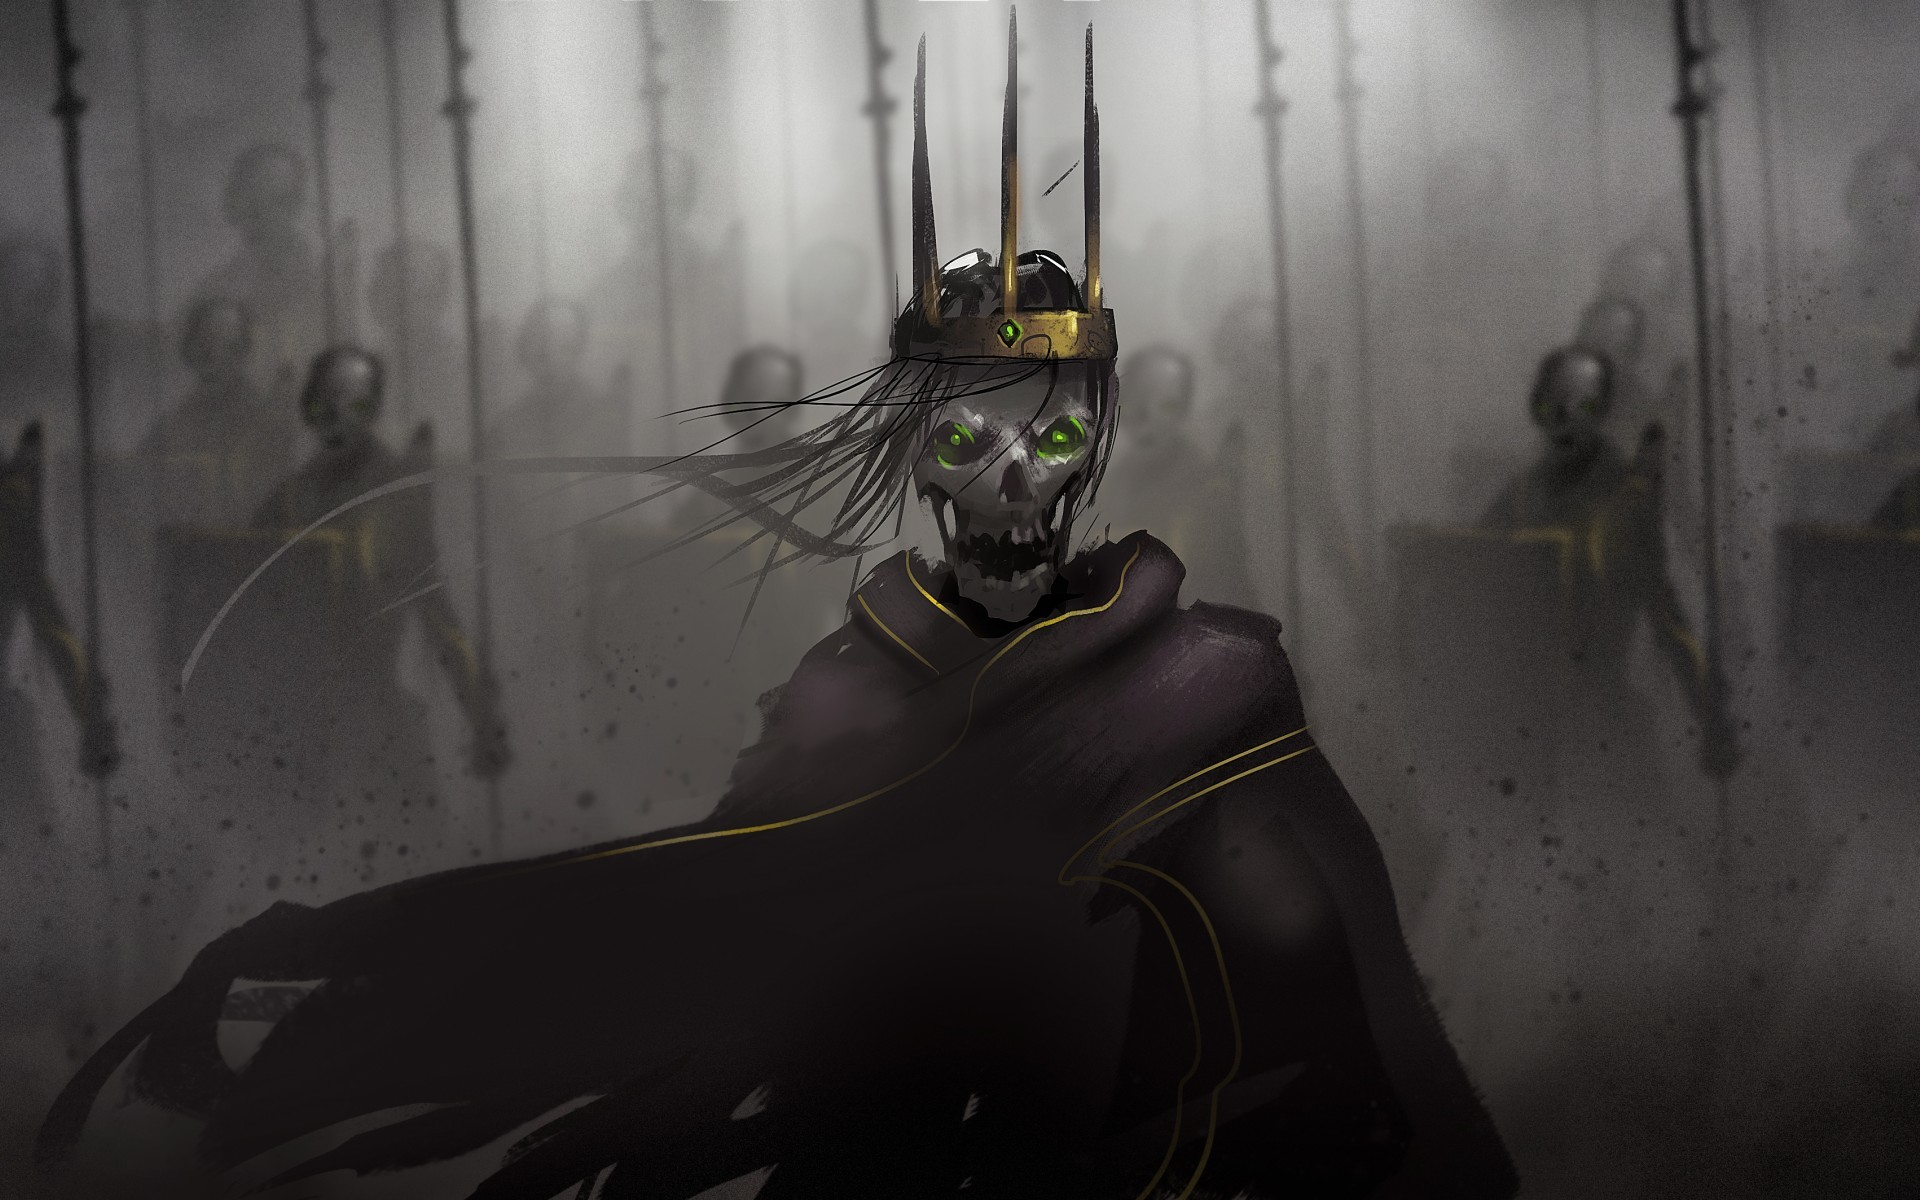 Res: 1920x1200, Undead army king artwork - Image #1428 - Licence: Free for Personal Use -